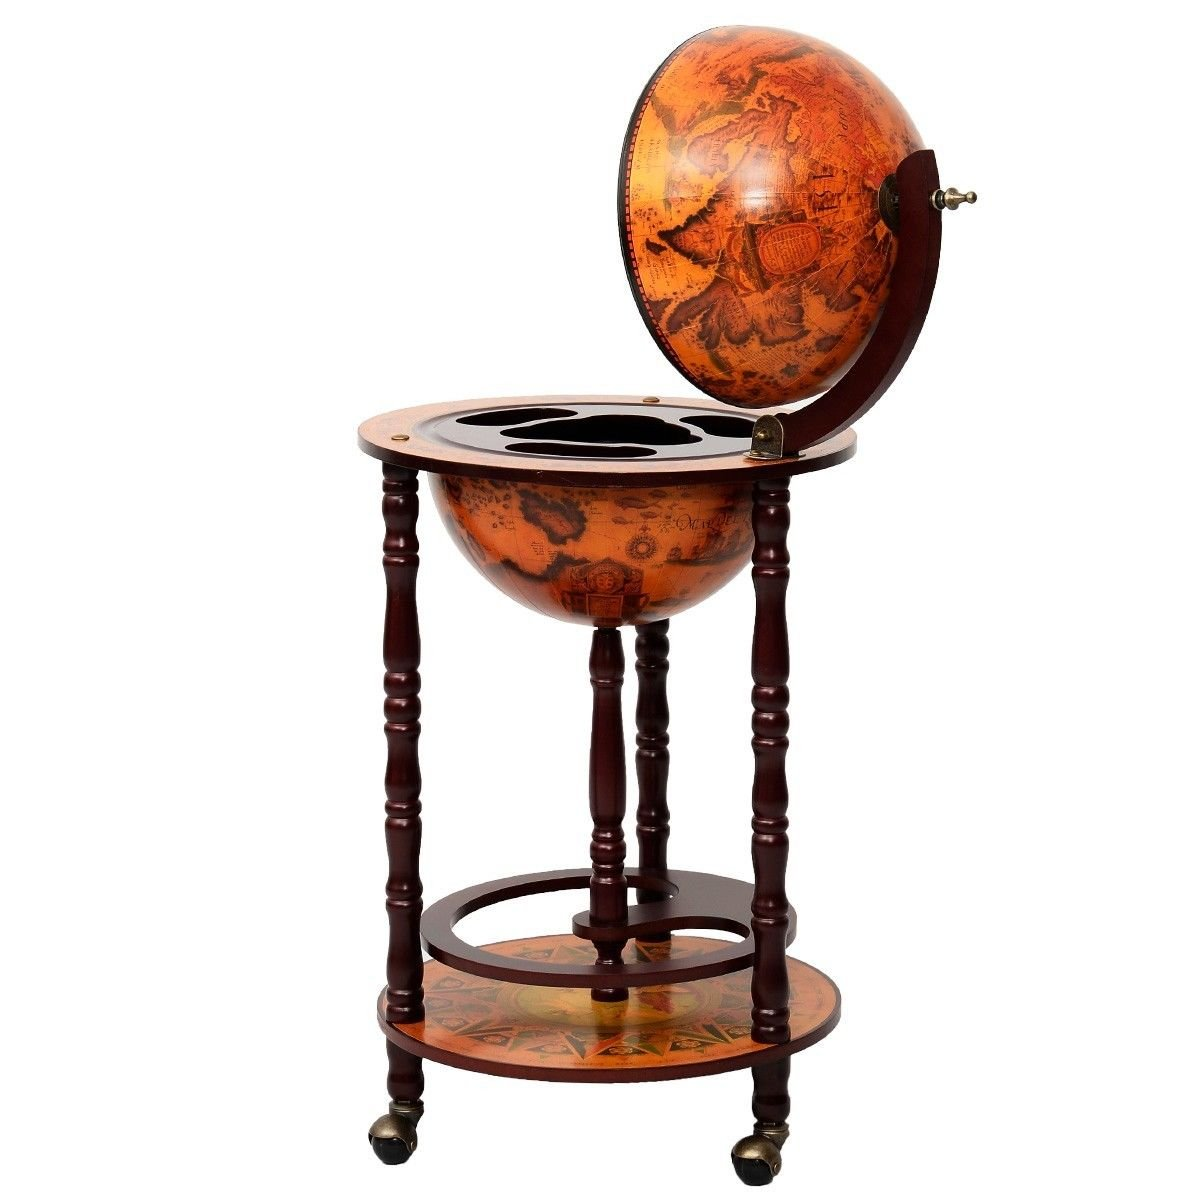 Unique Traditional Style 16th Century Italian Style 36'' Wood Globe Wine Rack Bar Stand Holds Bottles And Wine Glass In An Old World Map Design Looks Elegant In Your Living Or Home Office